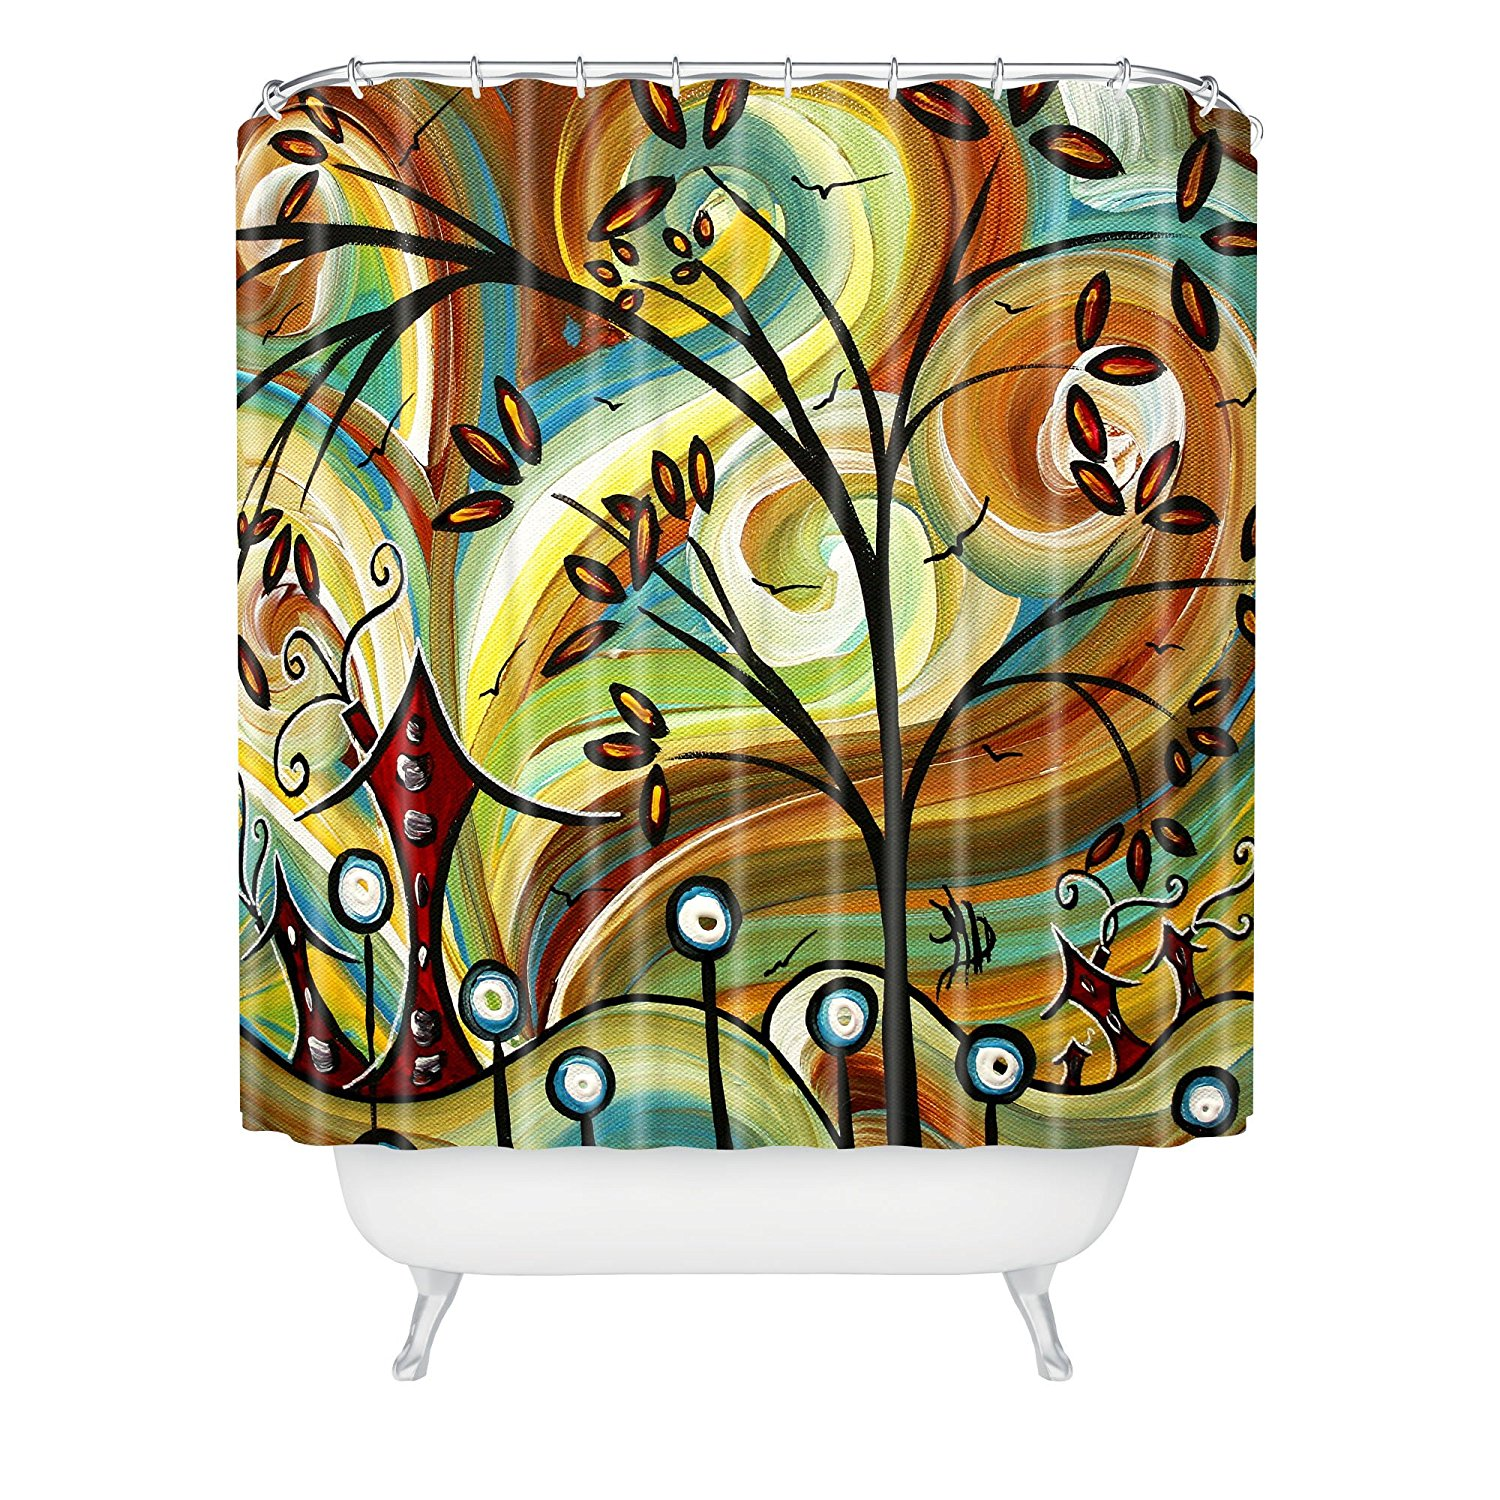 CHARMHOME Madart Inc. Fall Colors Duş Perde, 72x72 in